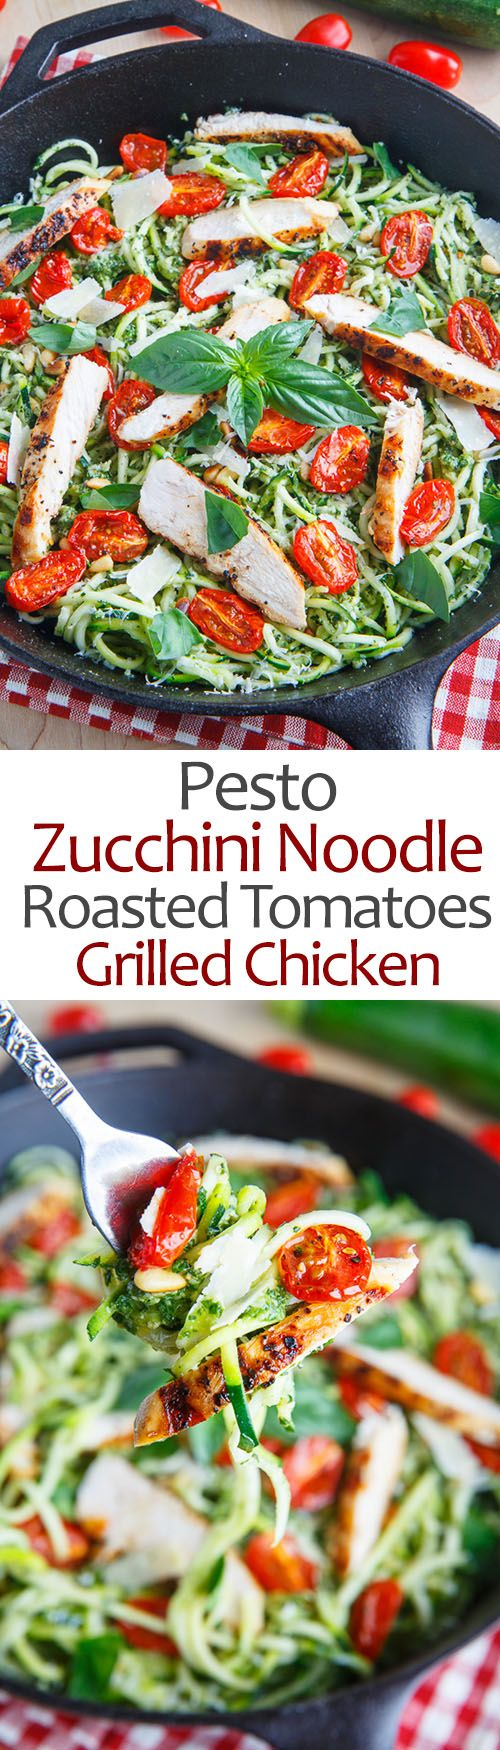 Pesto Zucchini Noodles with Roasted Tomatoes and Grilled Chicken. I love the…